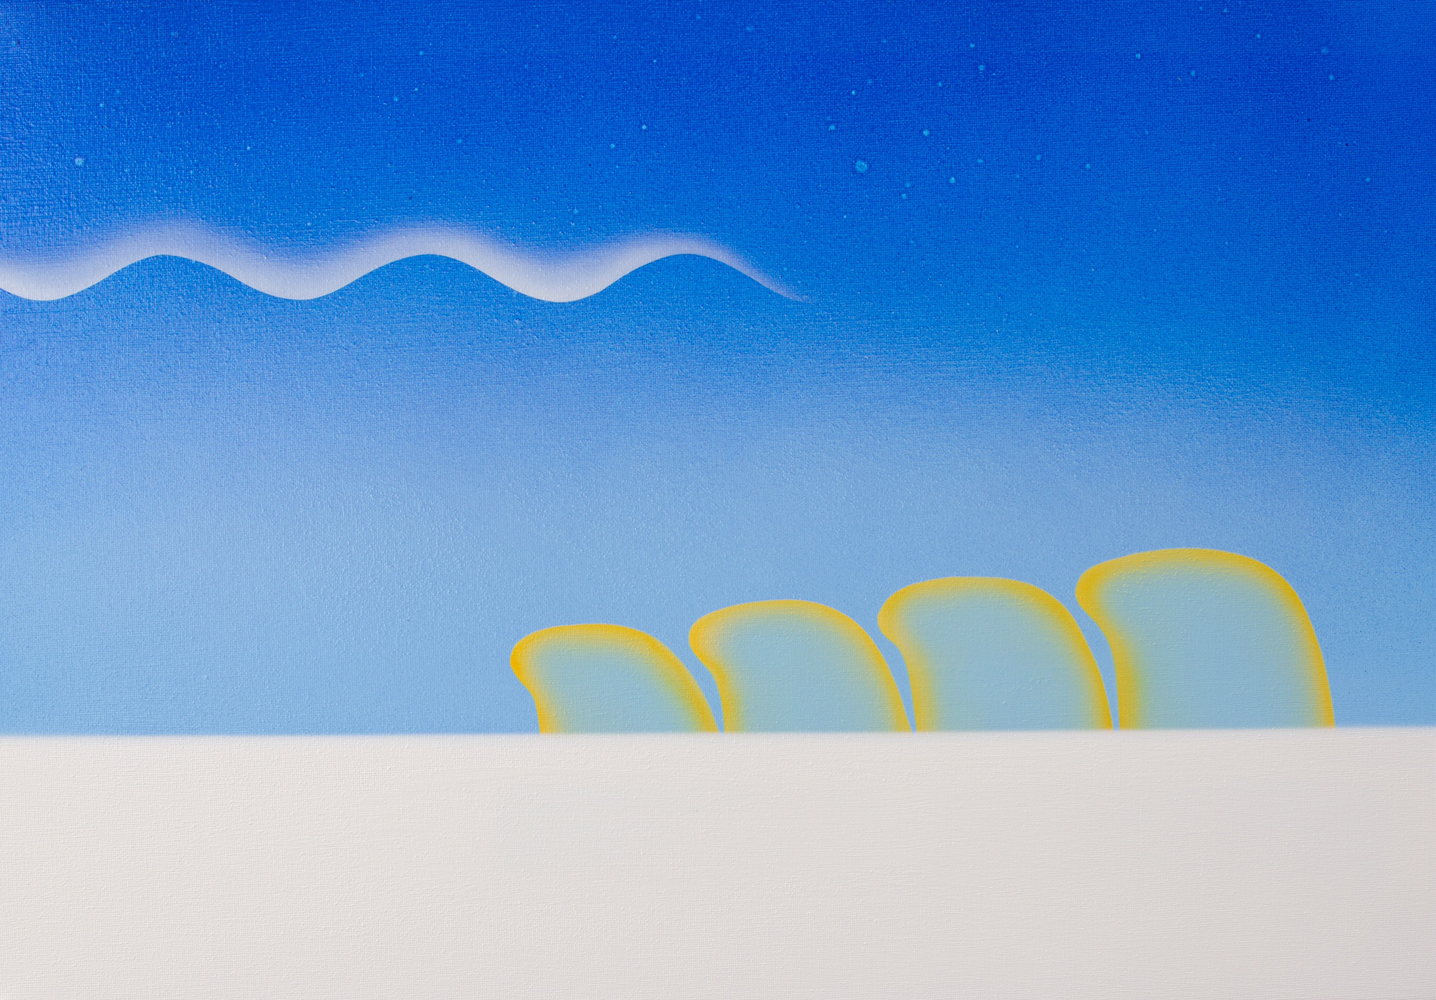 Matt Sellars, After Storm, 2021, acrylic on canvas, 16 x 23 inches, $2000.